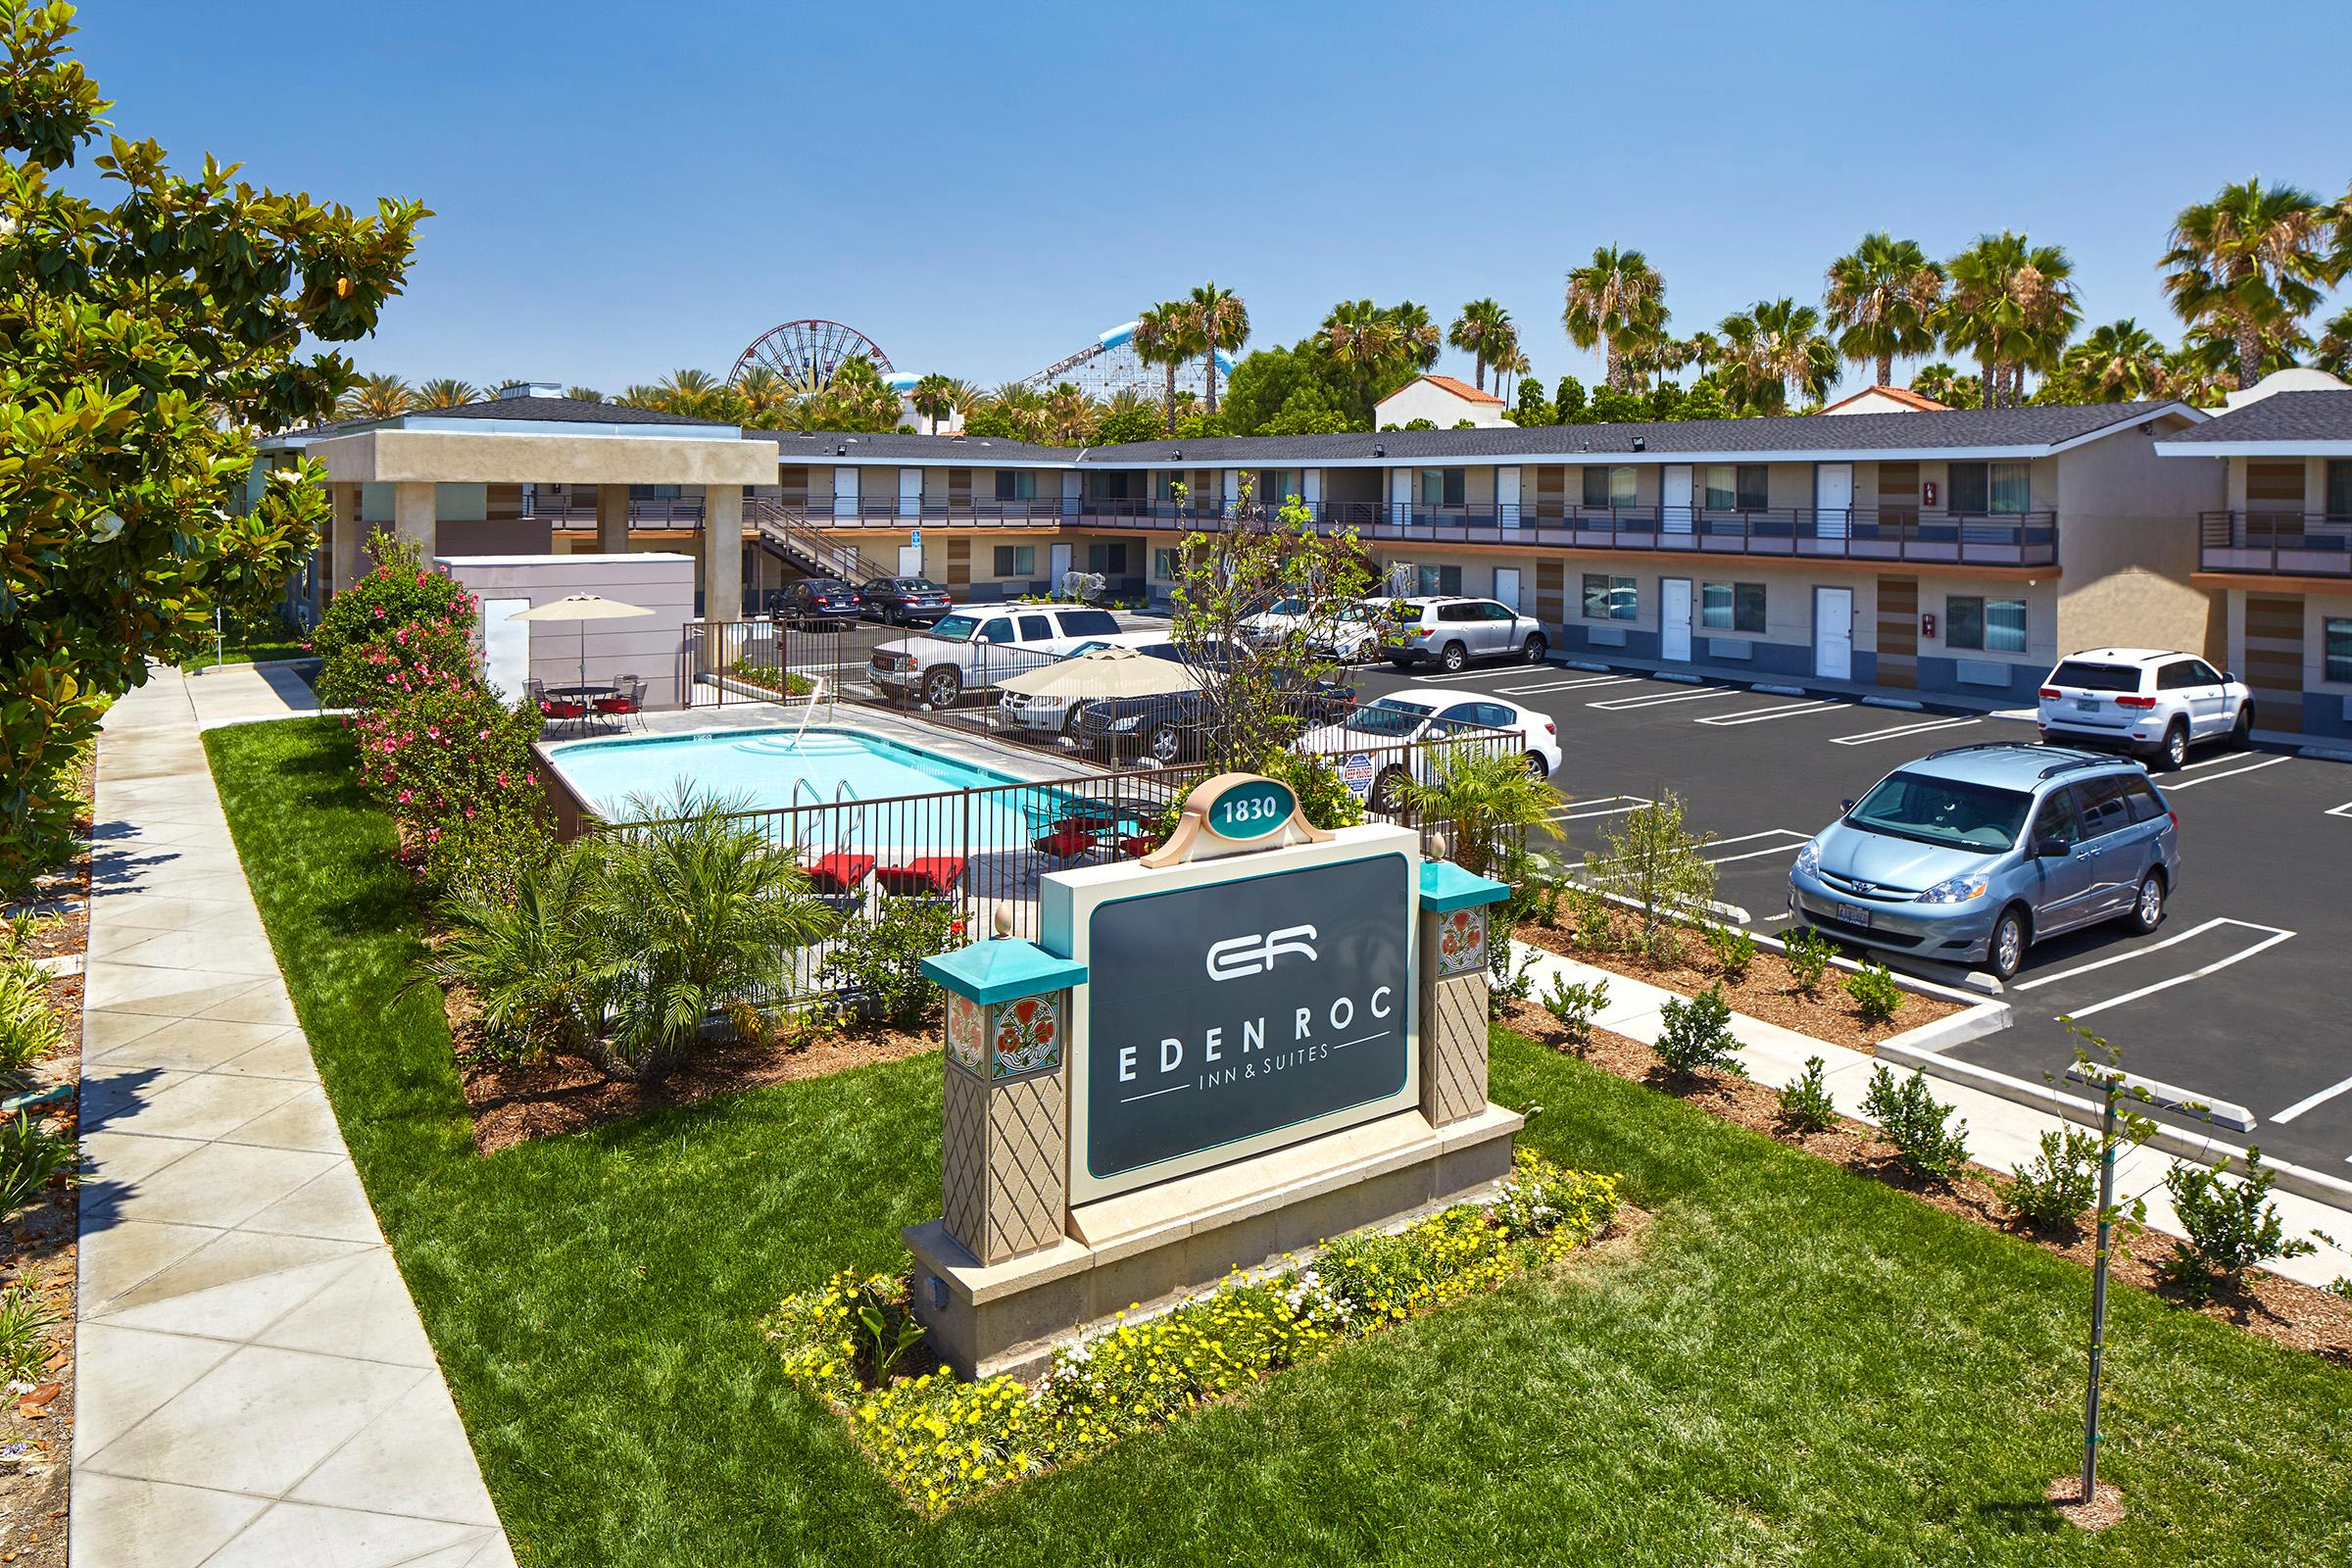 Eden Roc Inn & Suites